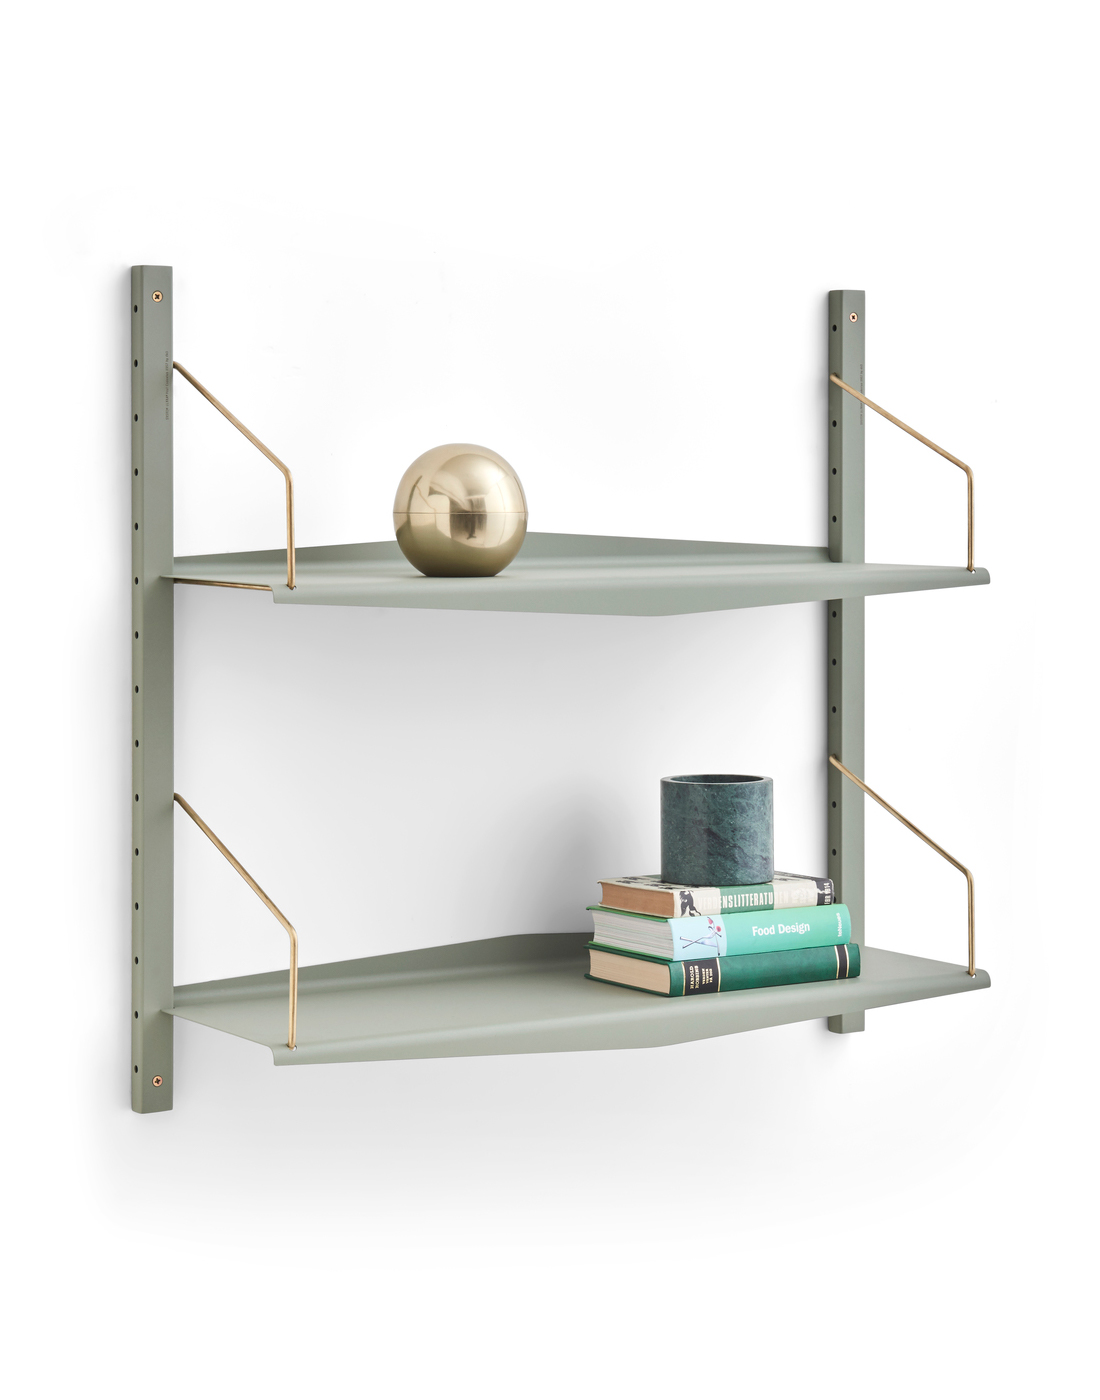 System Ultra shelving system by dk3